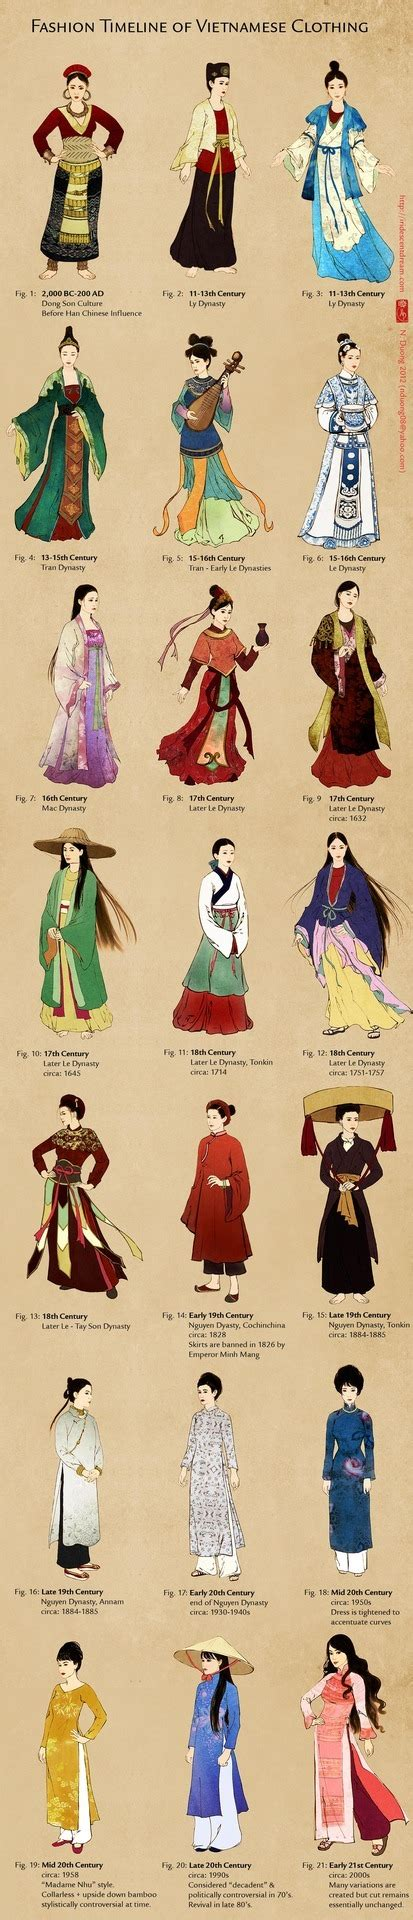 chinese traditional fashion timeline updated evolution of vietnamese clothing full nancy